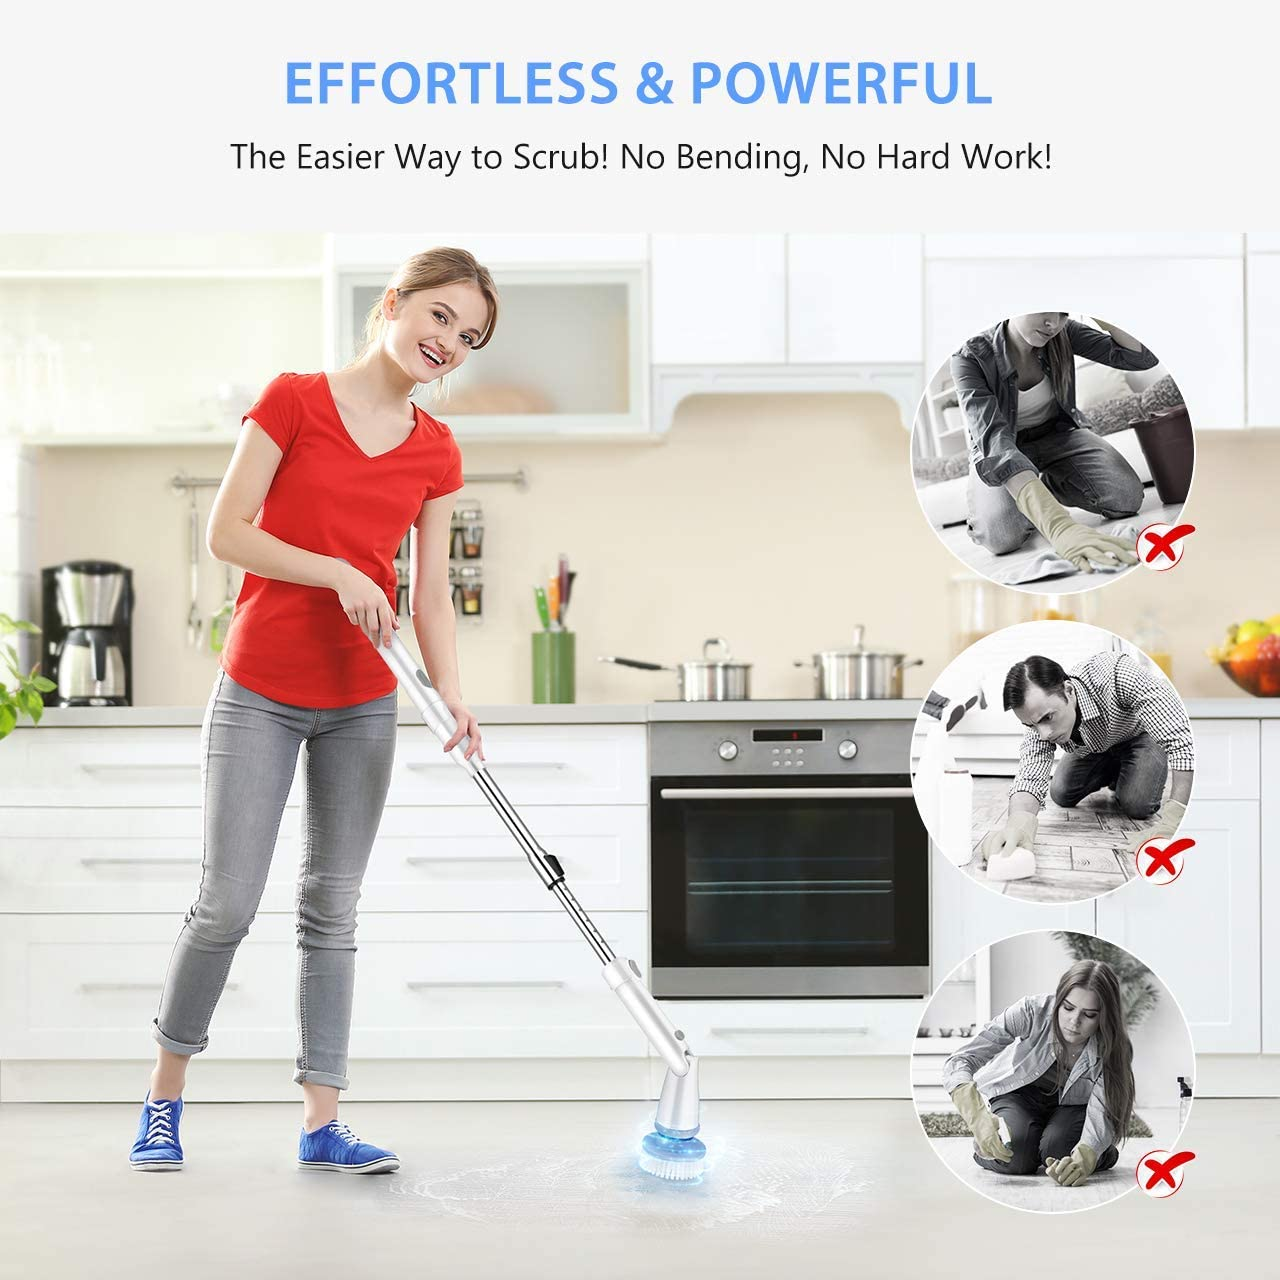 Homitt Electric Spin Scrubber with Rechargeable Battery, 360 Power Tile Scrubber with 4 Multi-Purpose Replaceable Shower Scrubber Brush Heads, 1 Extension Arm for Bathroom, Tub, Floor: Home & Kitchen